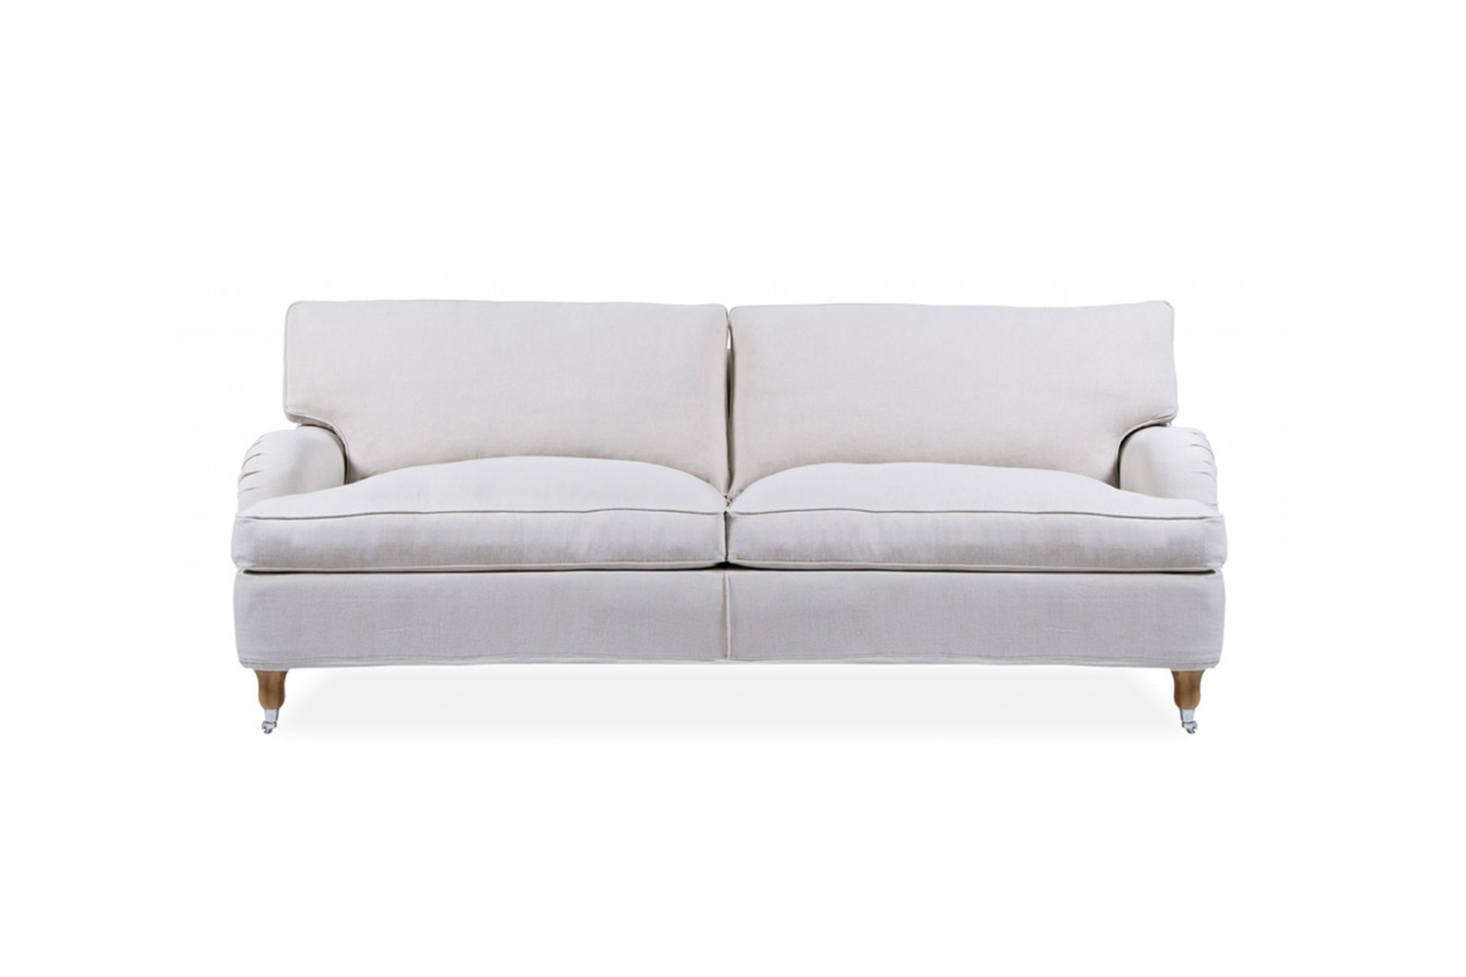 The Fogia Howards Edward Sofa is designed by Håkan Urdell in solid beach with Bonell springs and a foam and feather cushion. It's $6,213.50 at Danish Design Store.